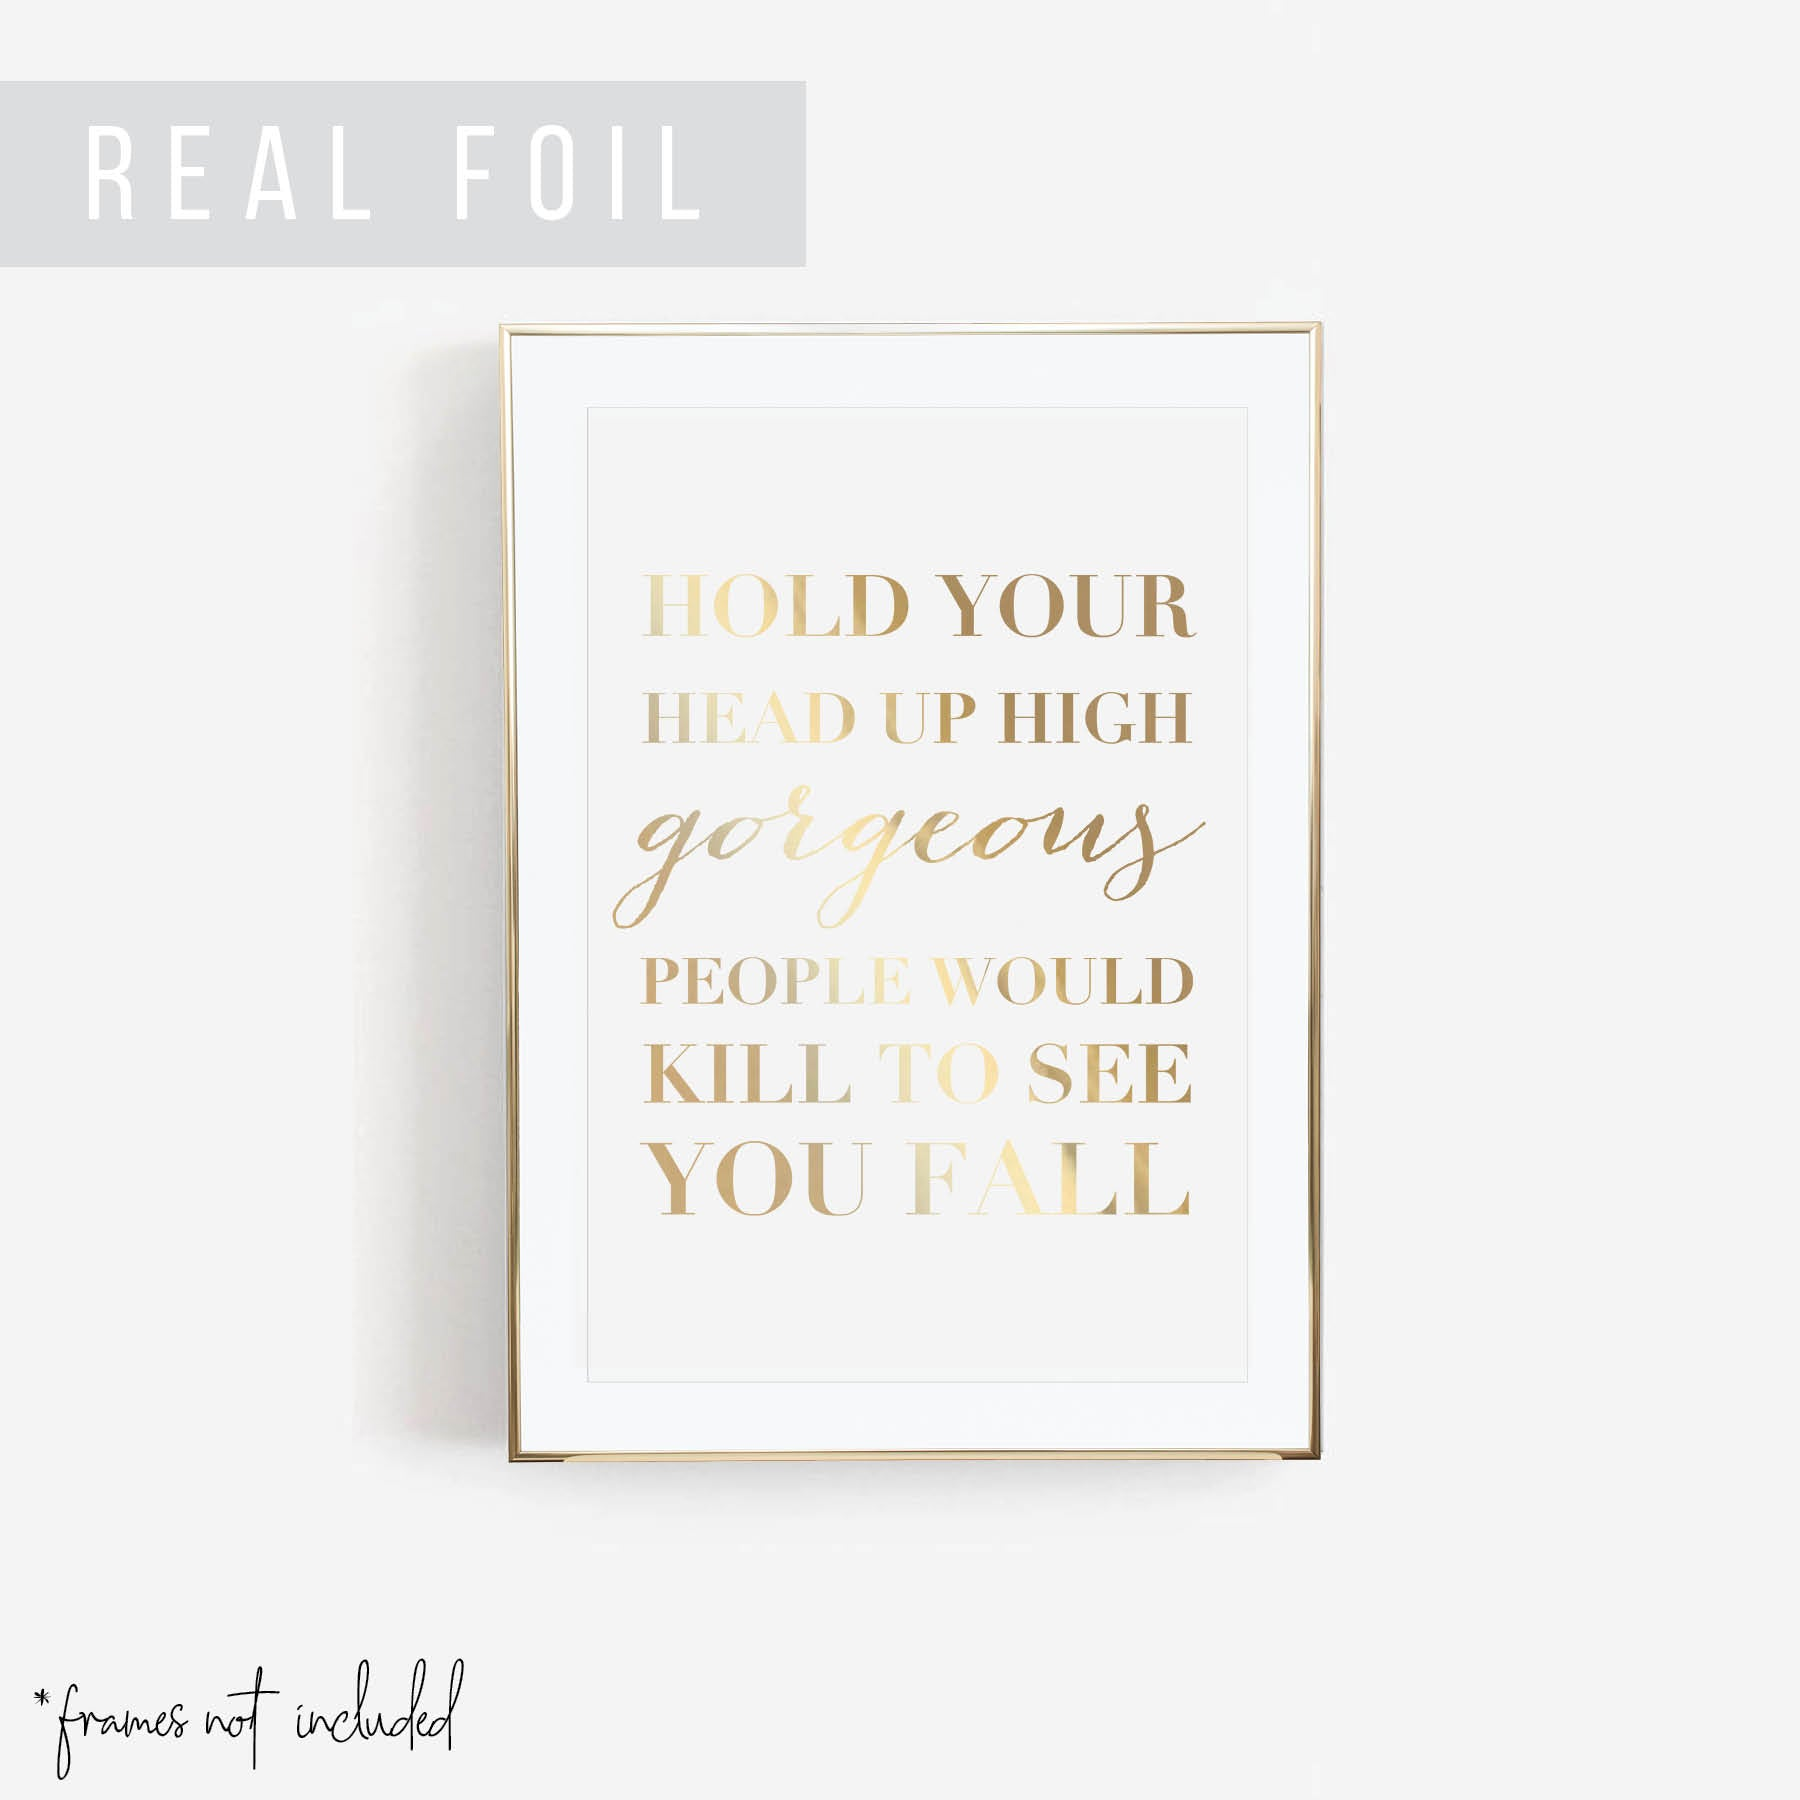 Hold Your Head Up High Gorgeous. People Would Kill to See You Fall Foiled Art Print